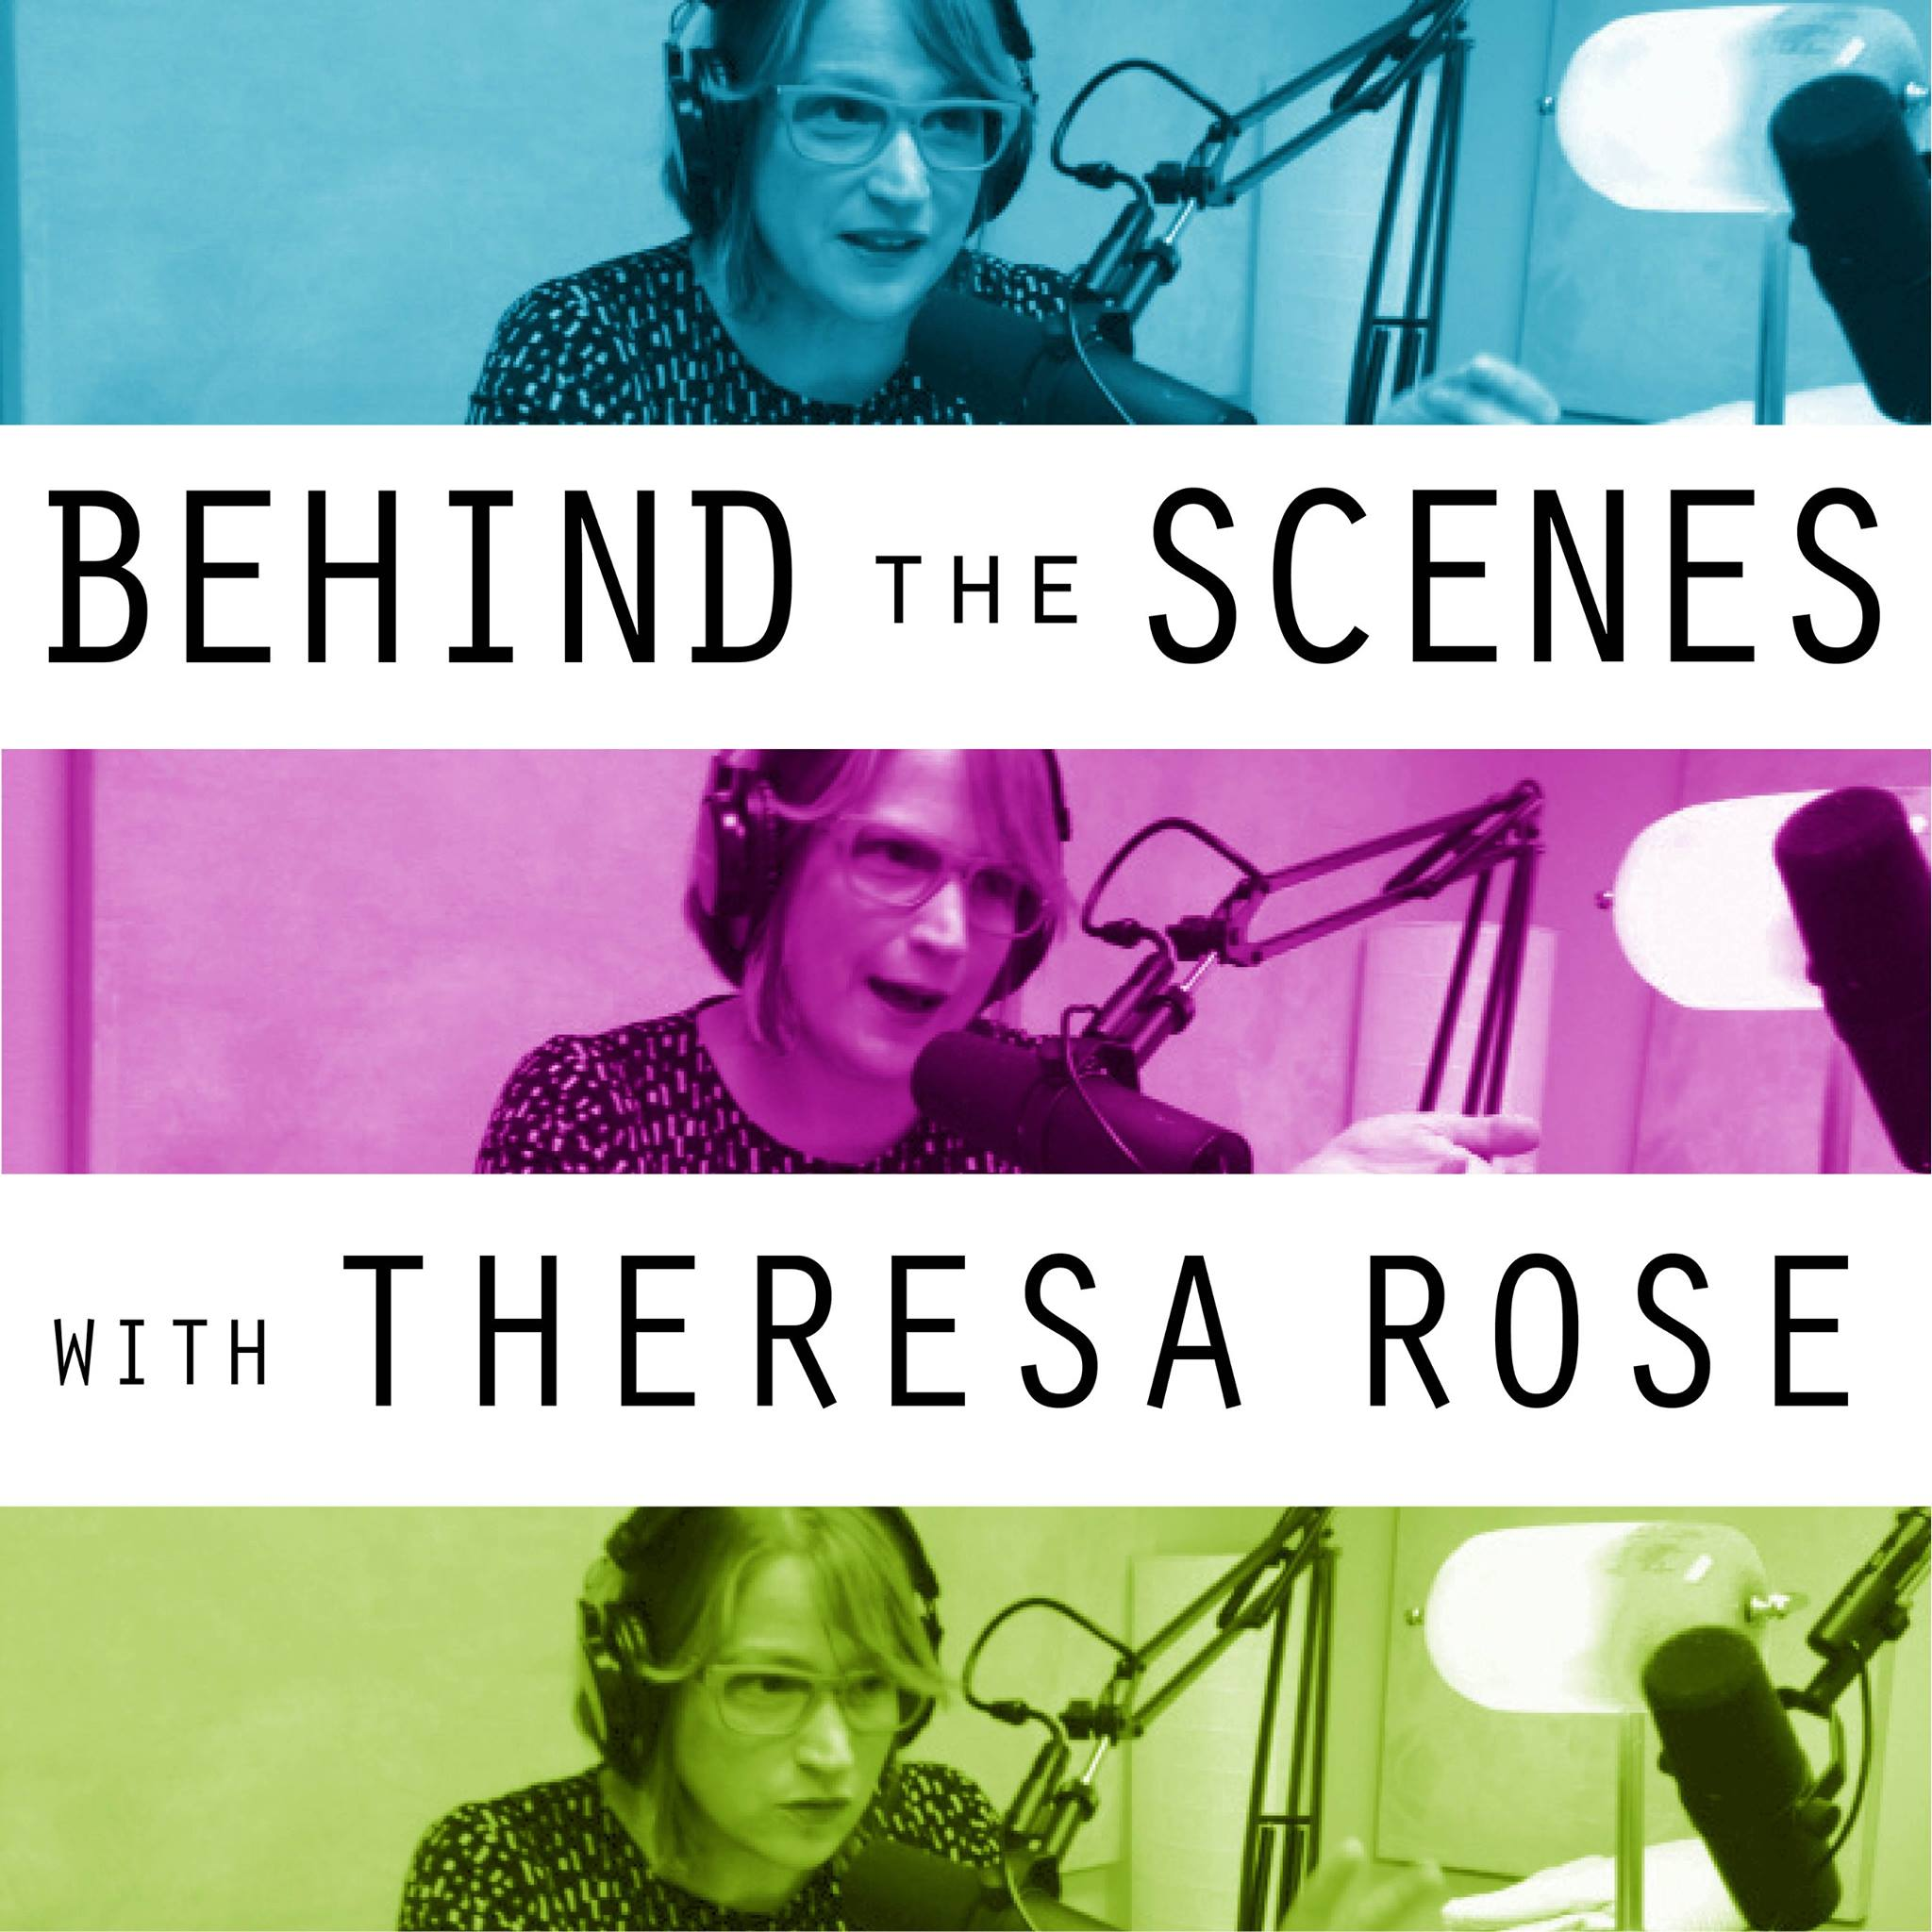 Behind The Scenes with Theresa Rose Podcast Logo